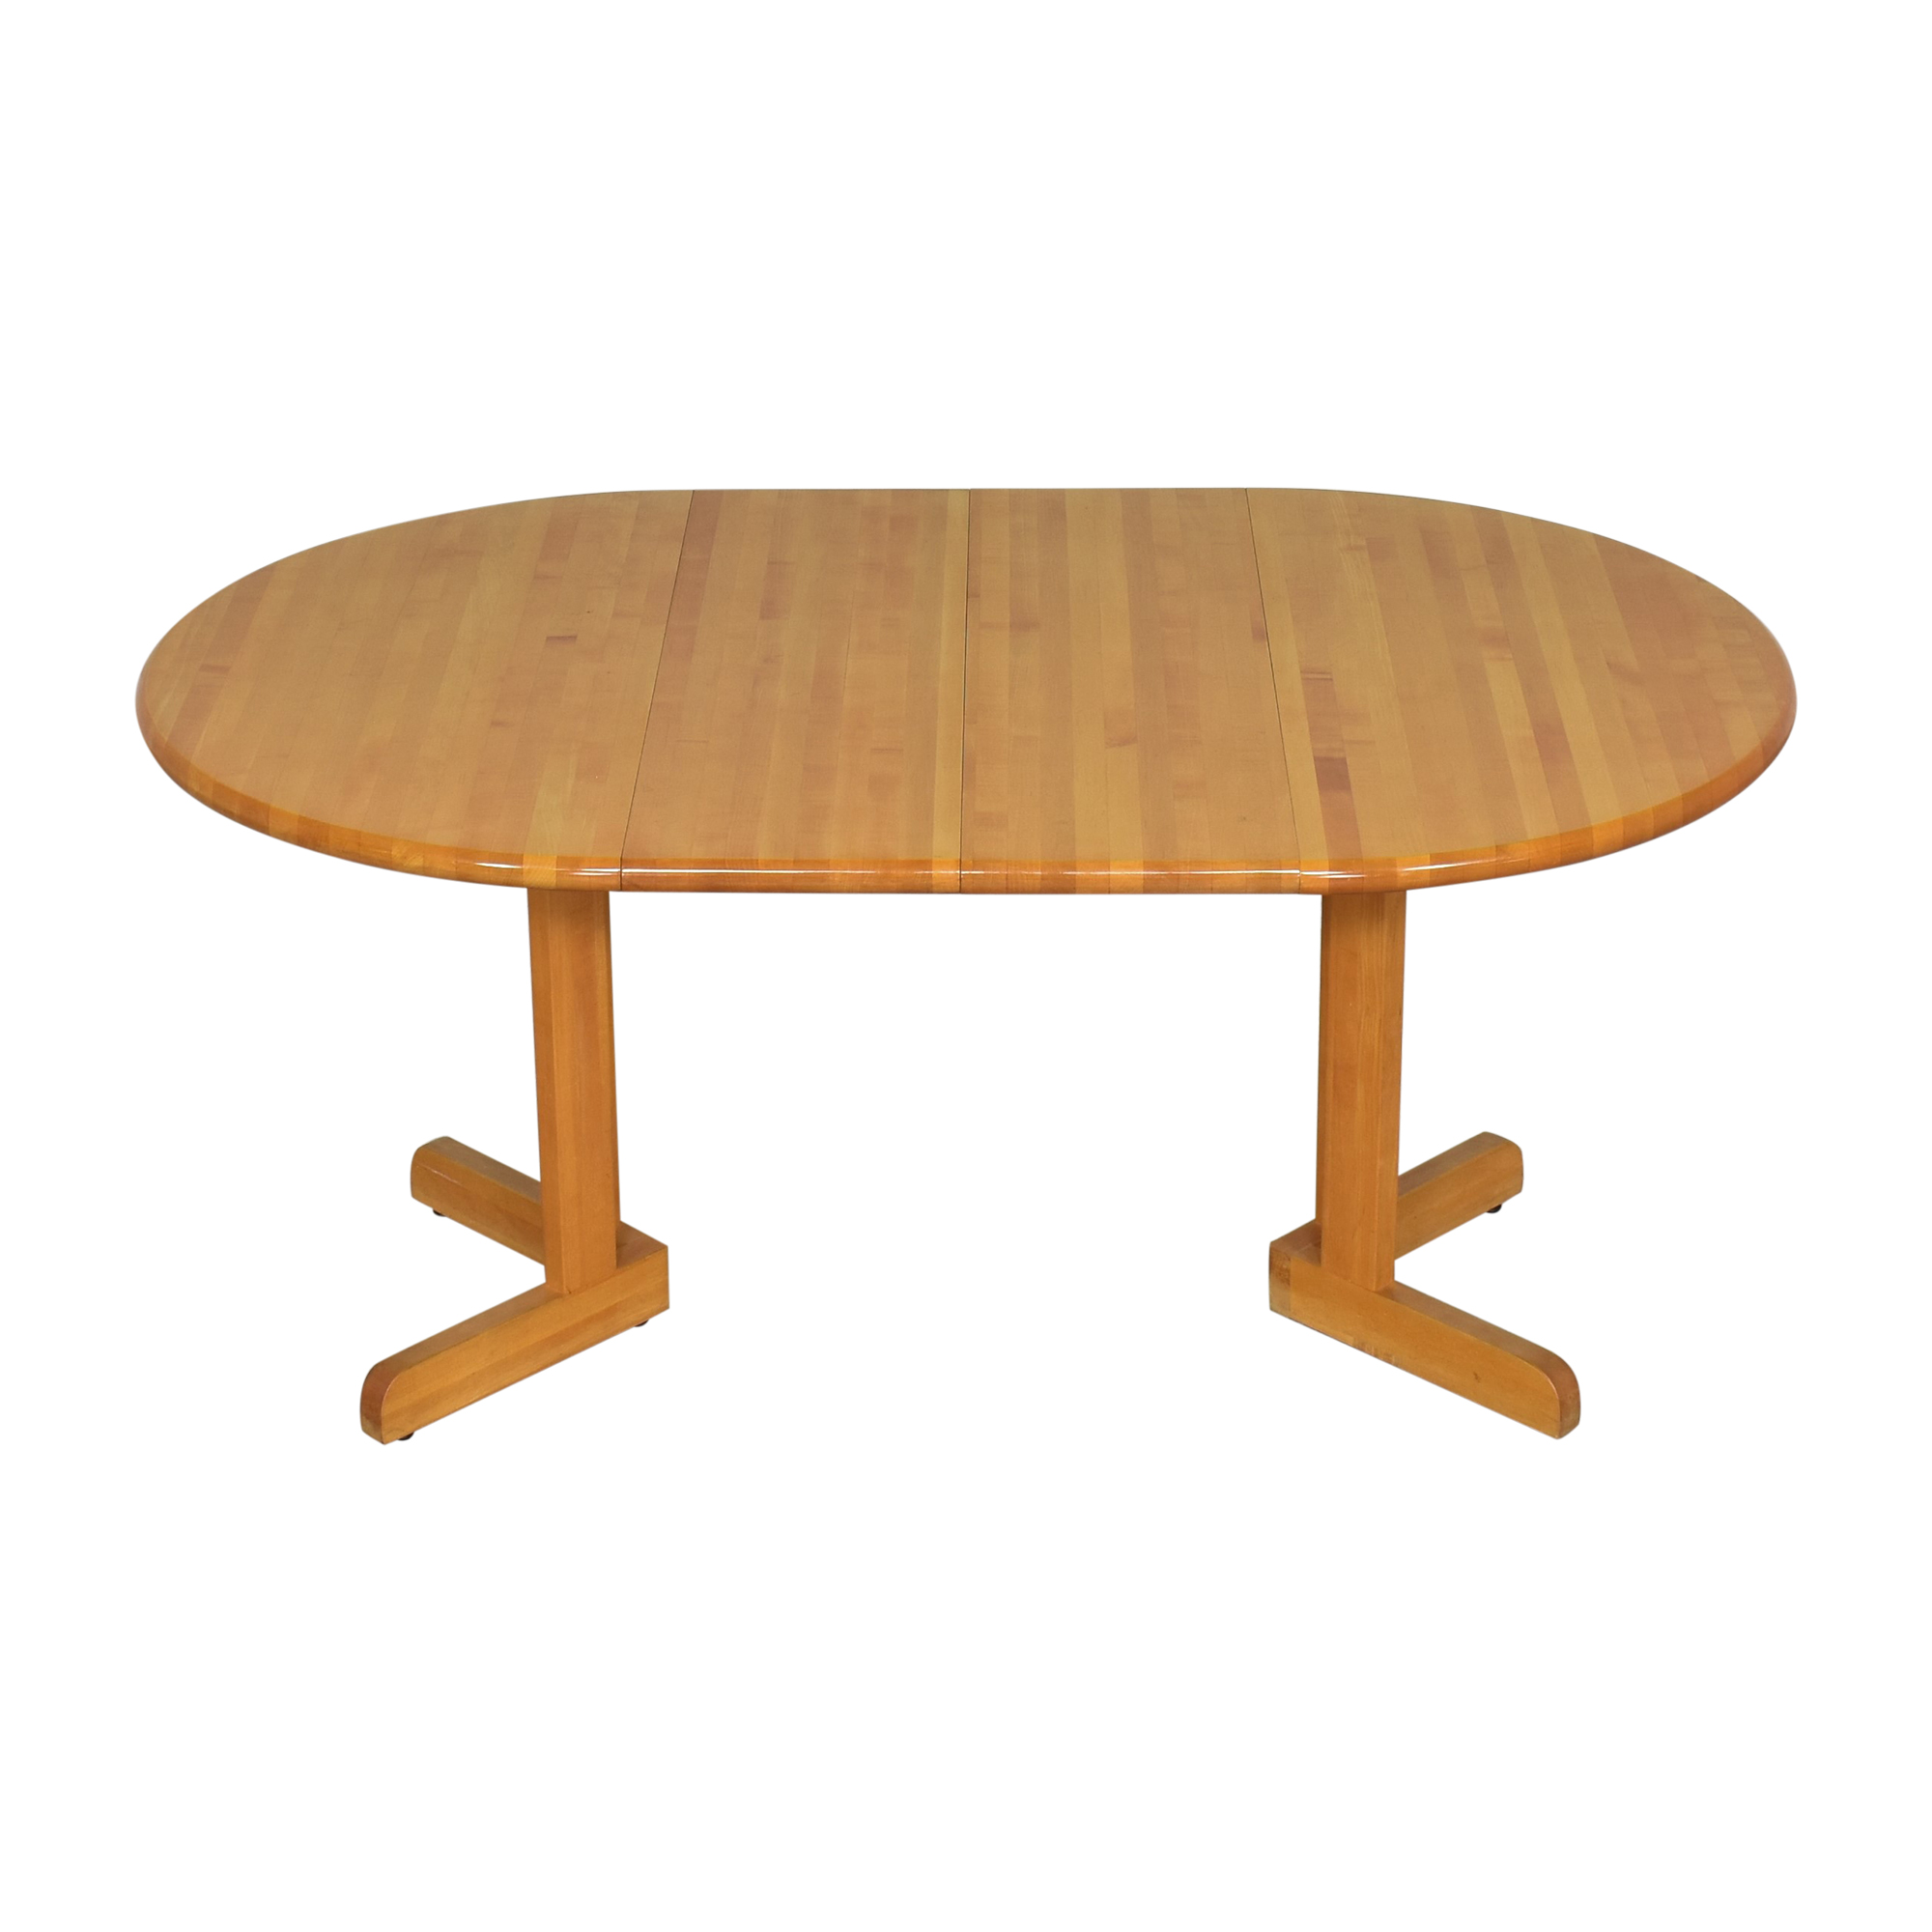 Walter of Wabash Walter of Wabash Round Extendable Dining Table